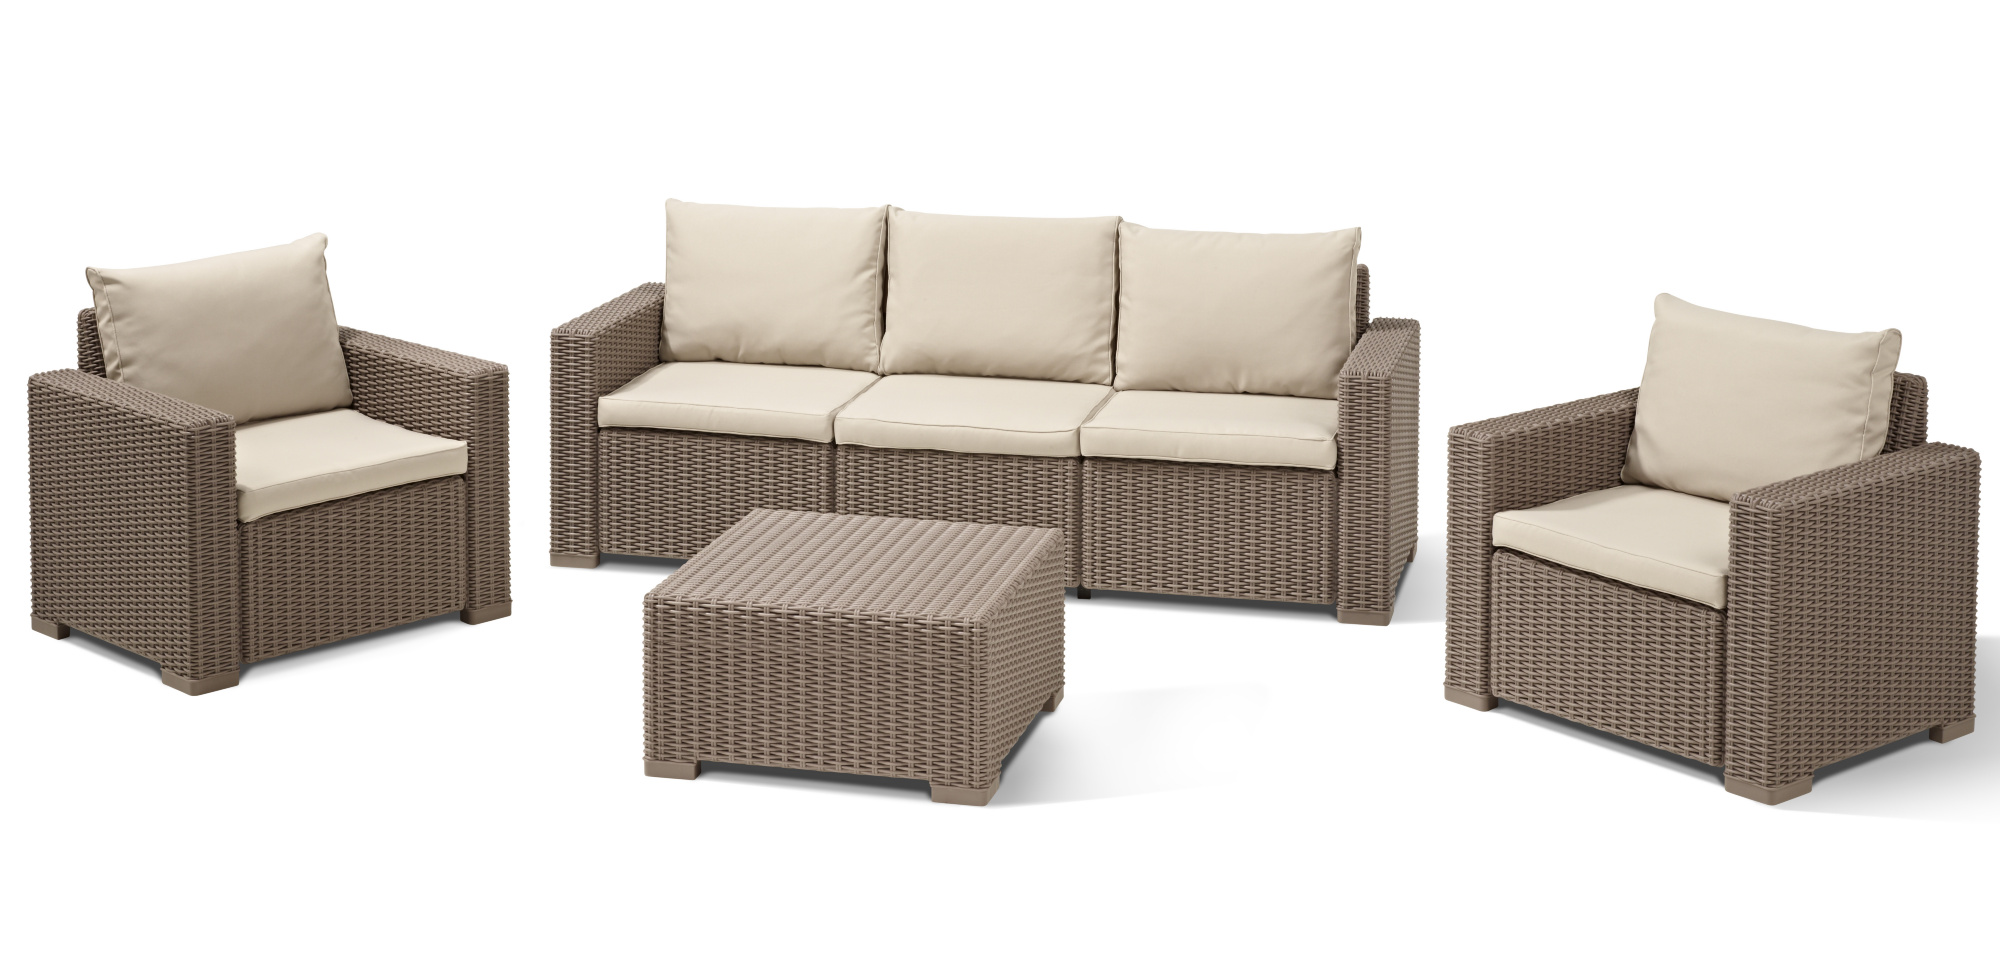 Lounge Set Mit Esstisch Loungemöbel Lounge Gartenmöbel Lounge Sets Allibert